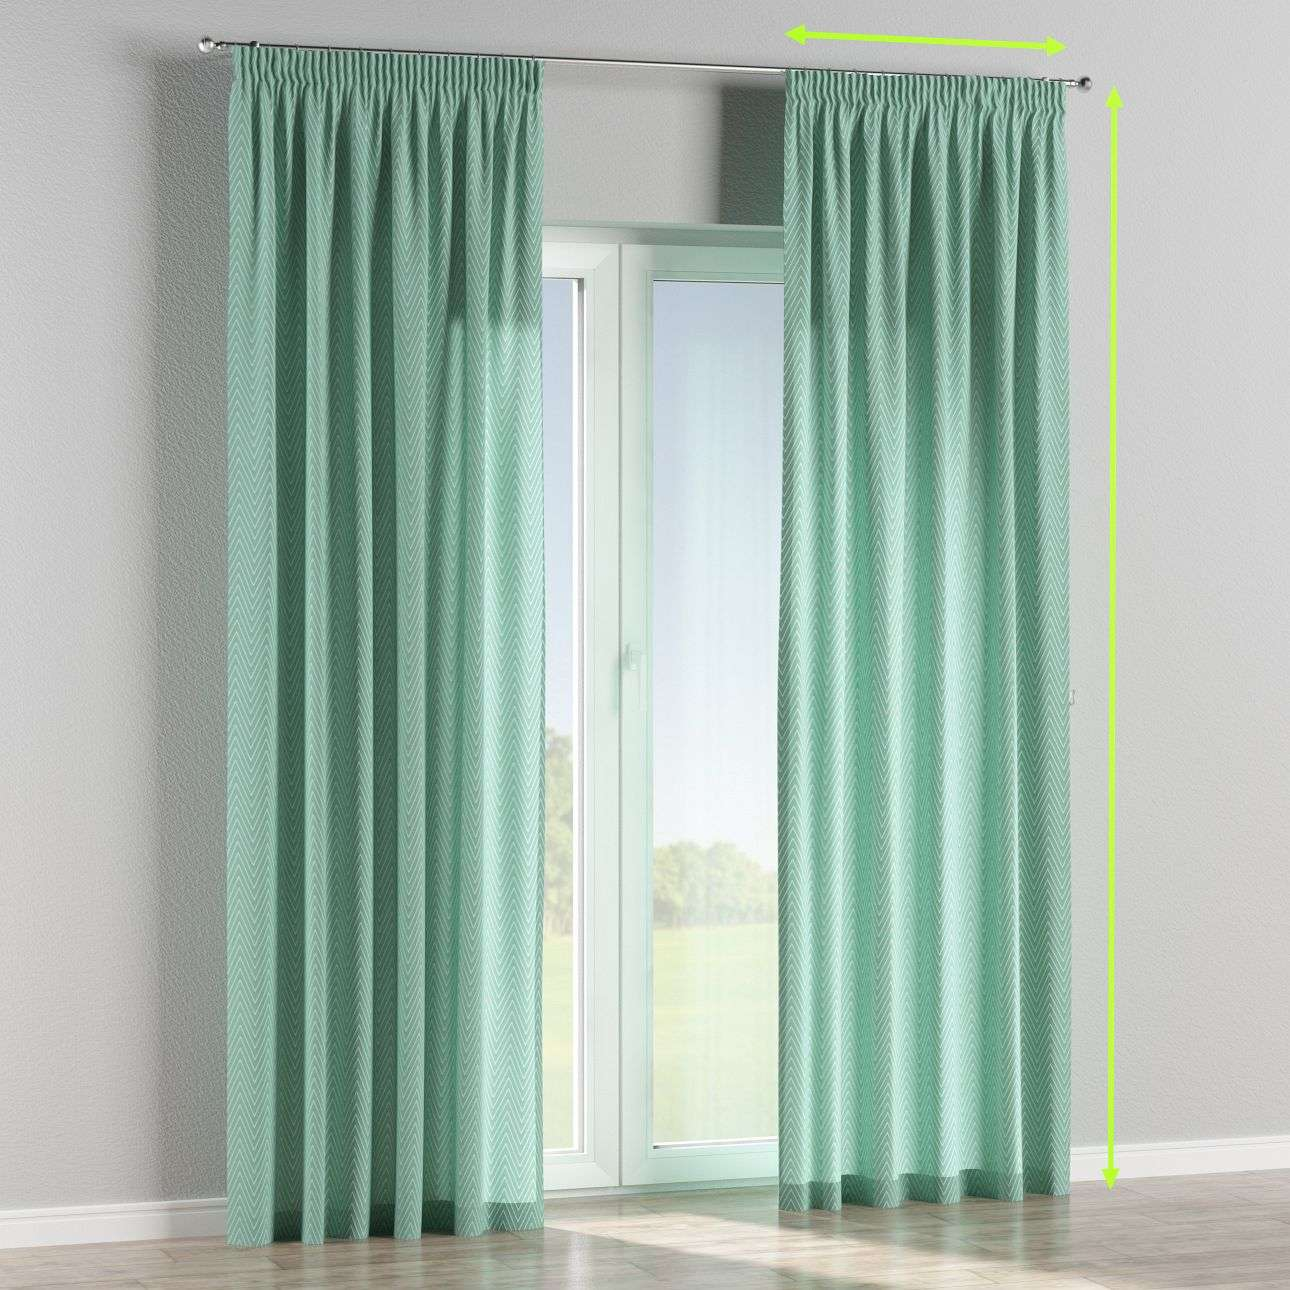 Pencil pleat lined curtains in collection Brooklyn, fabric: 137-90